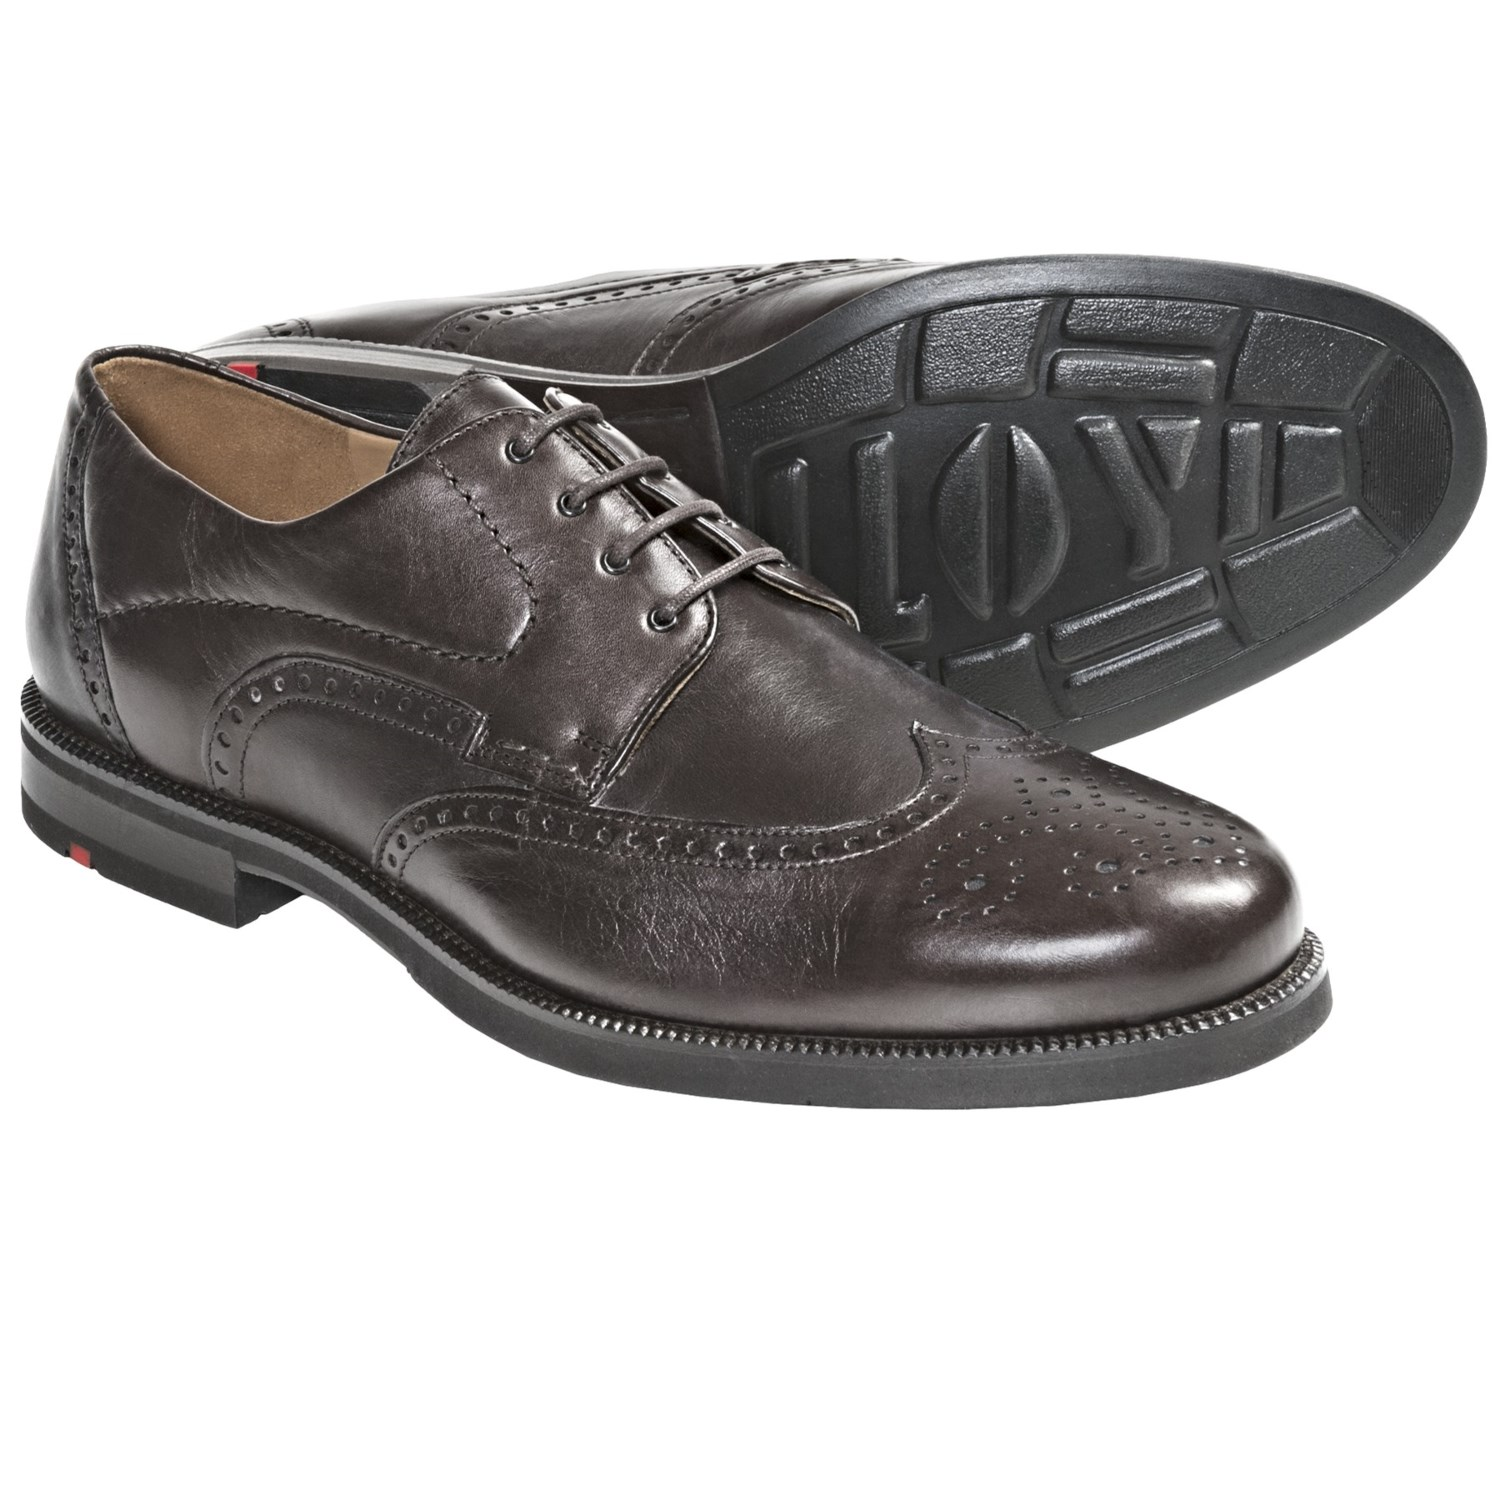 dress shoes for men women for girls with jeans designs